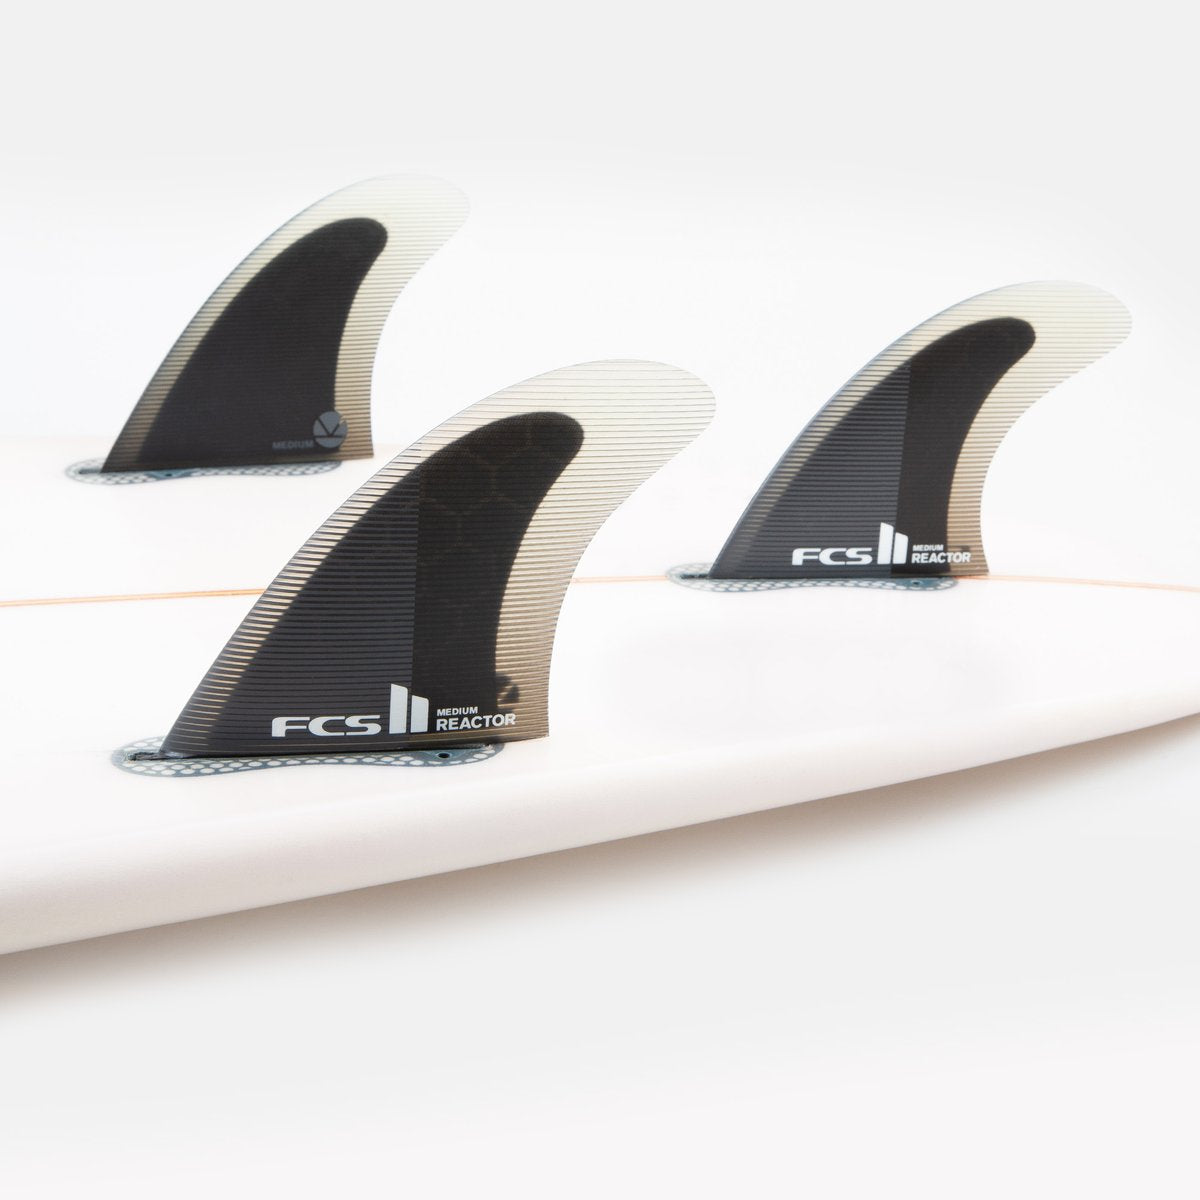 FCS 11 REACTOR PC TRI FINS